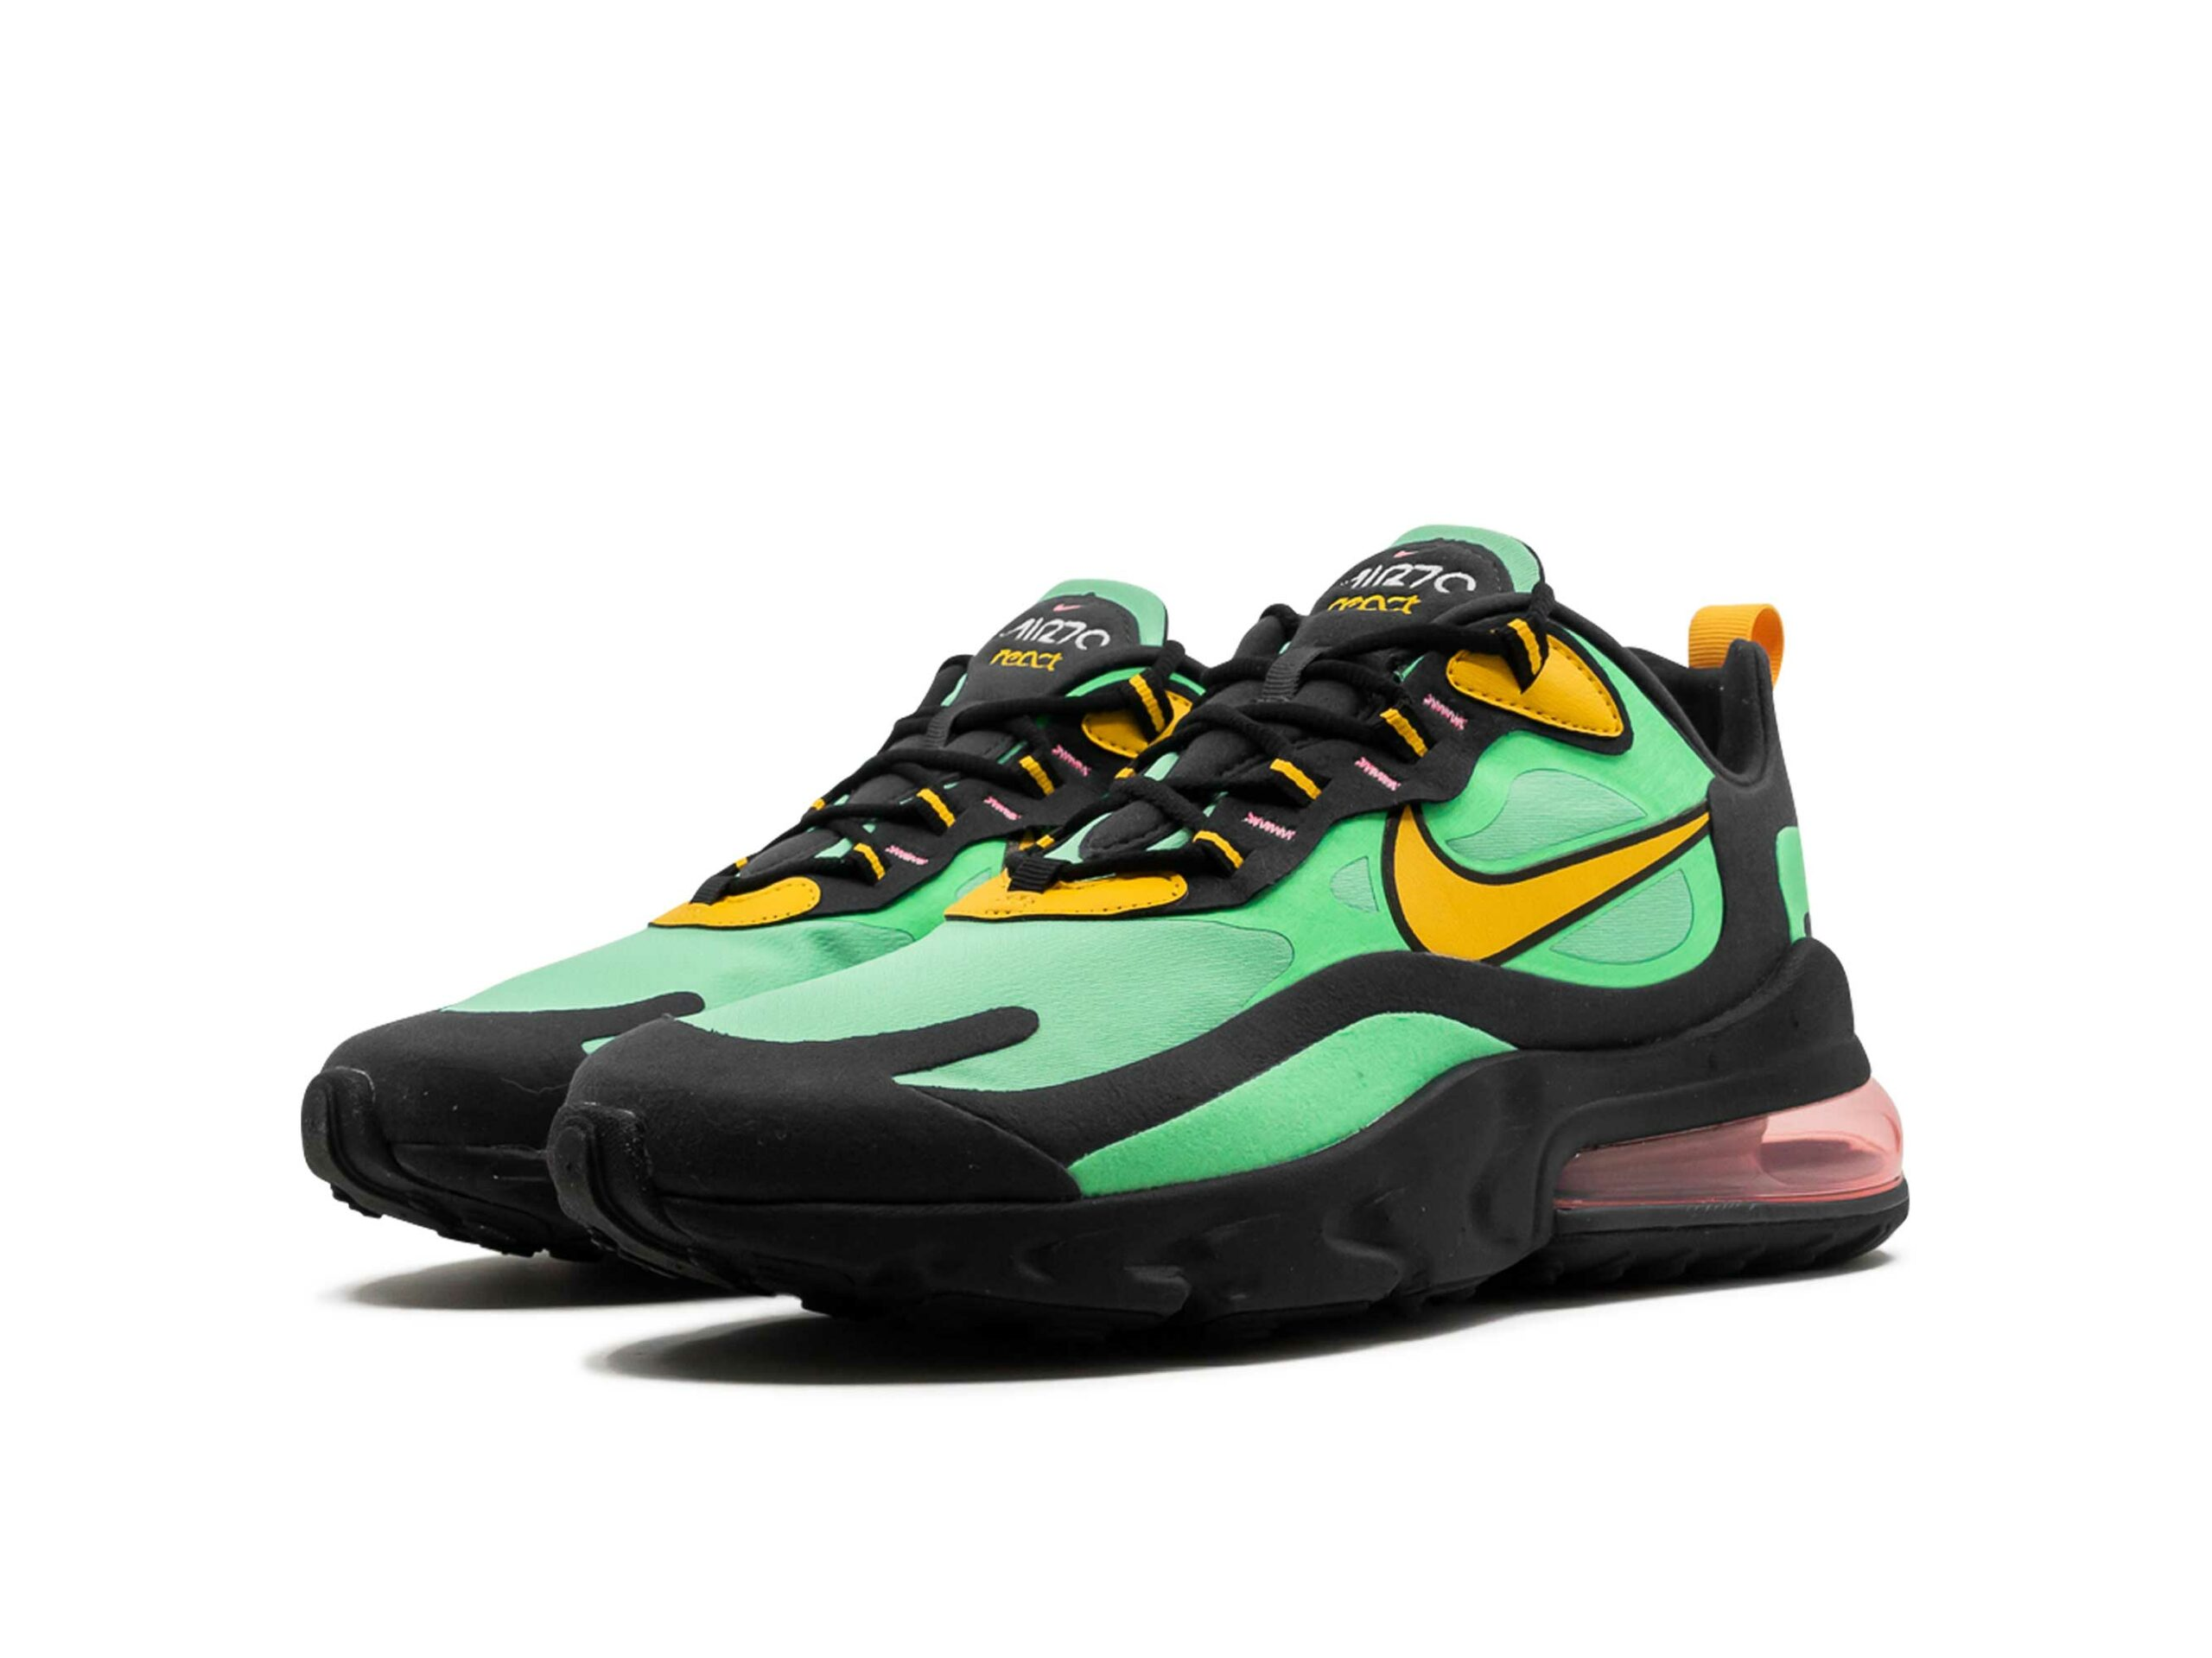 nike air max 270 react electro green AO4971_300 купить